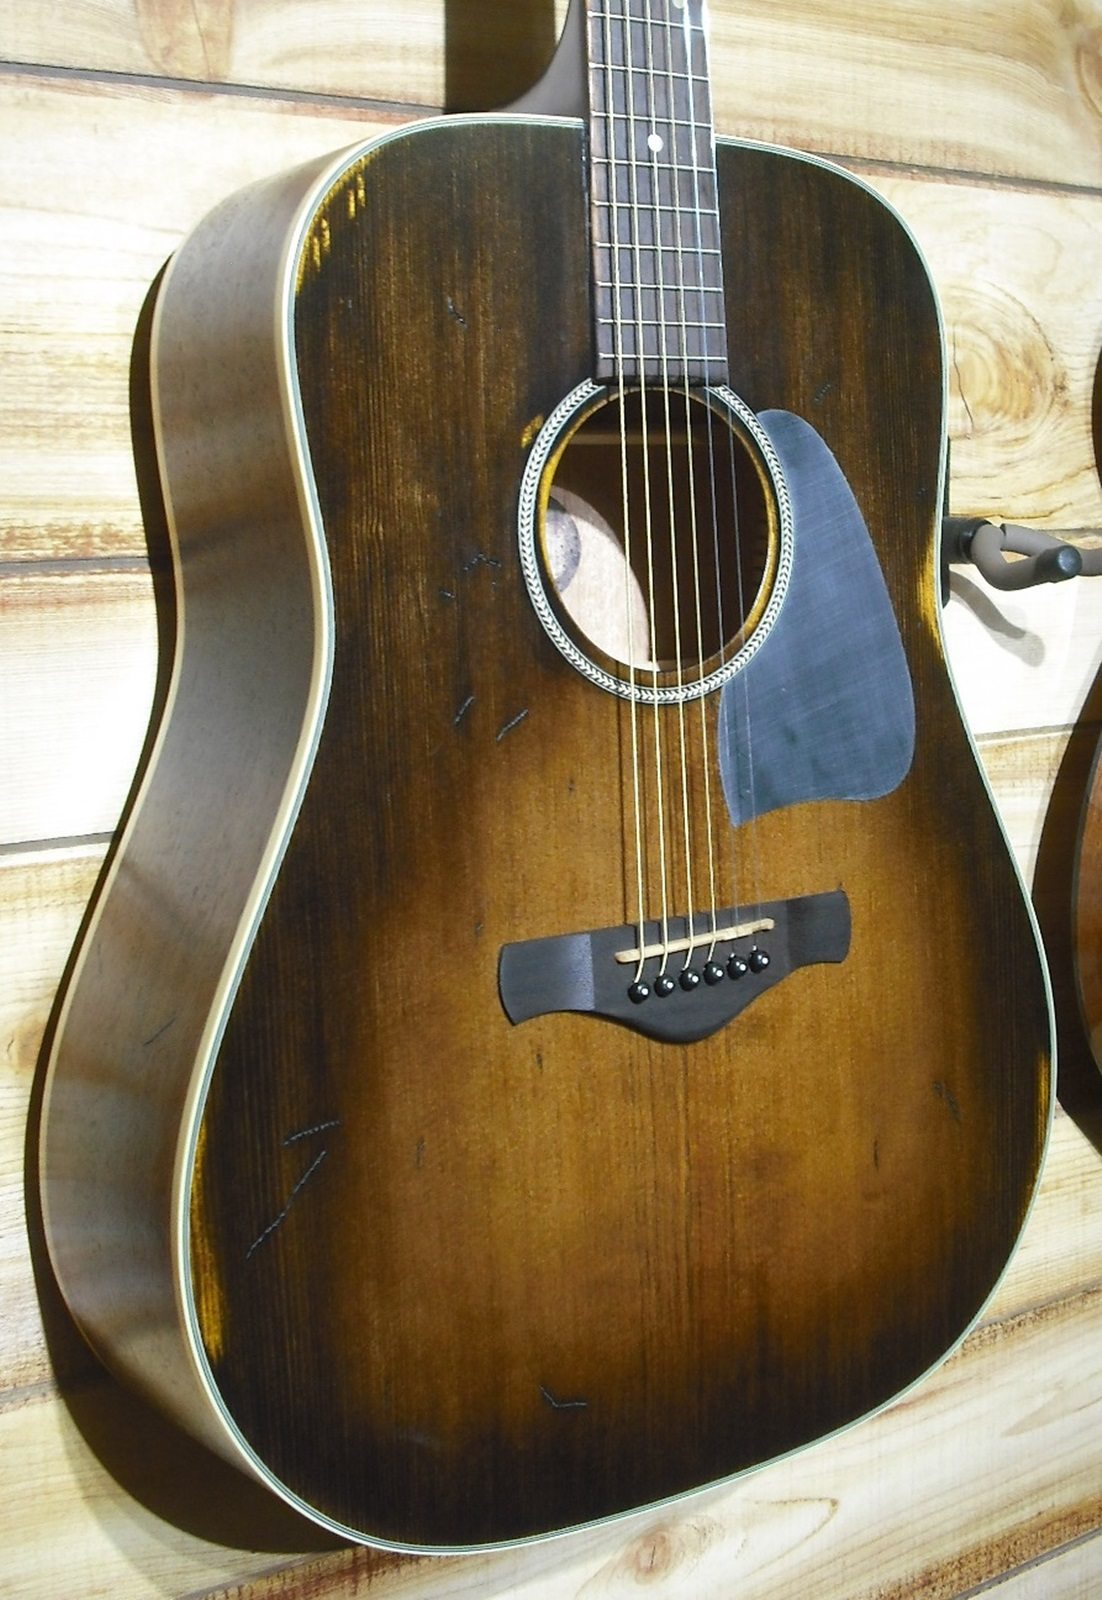 Ibanez AVD6 Dreadnought Acoustic Guitar Distressed Tobacco Sunburst